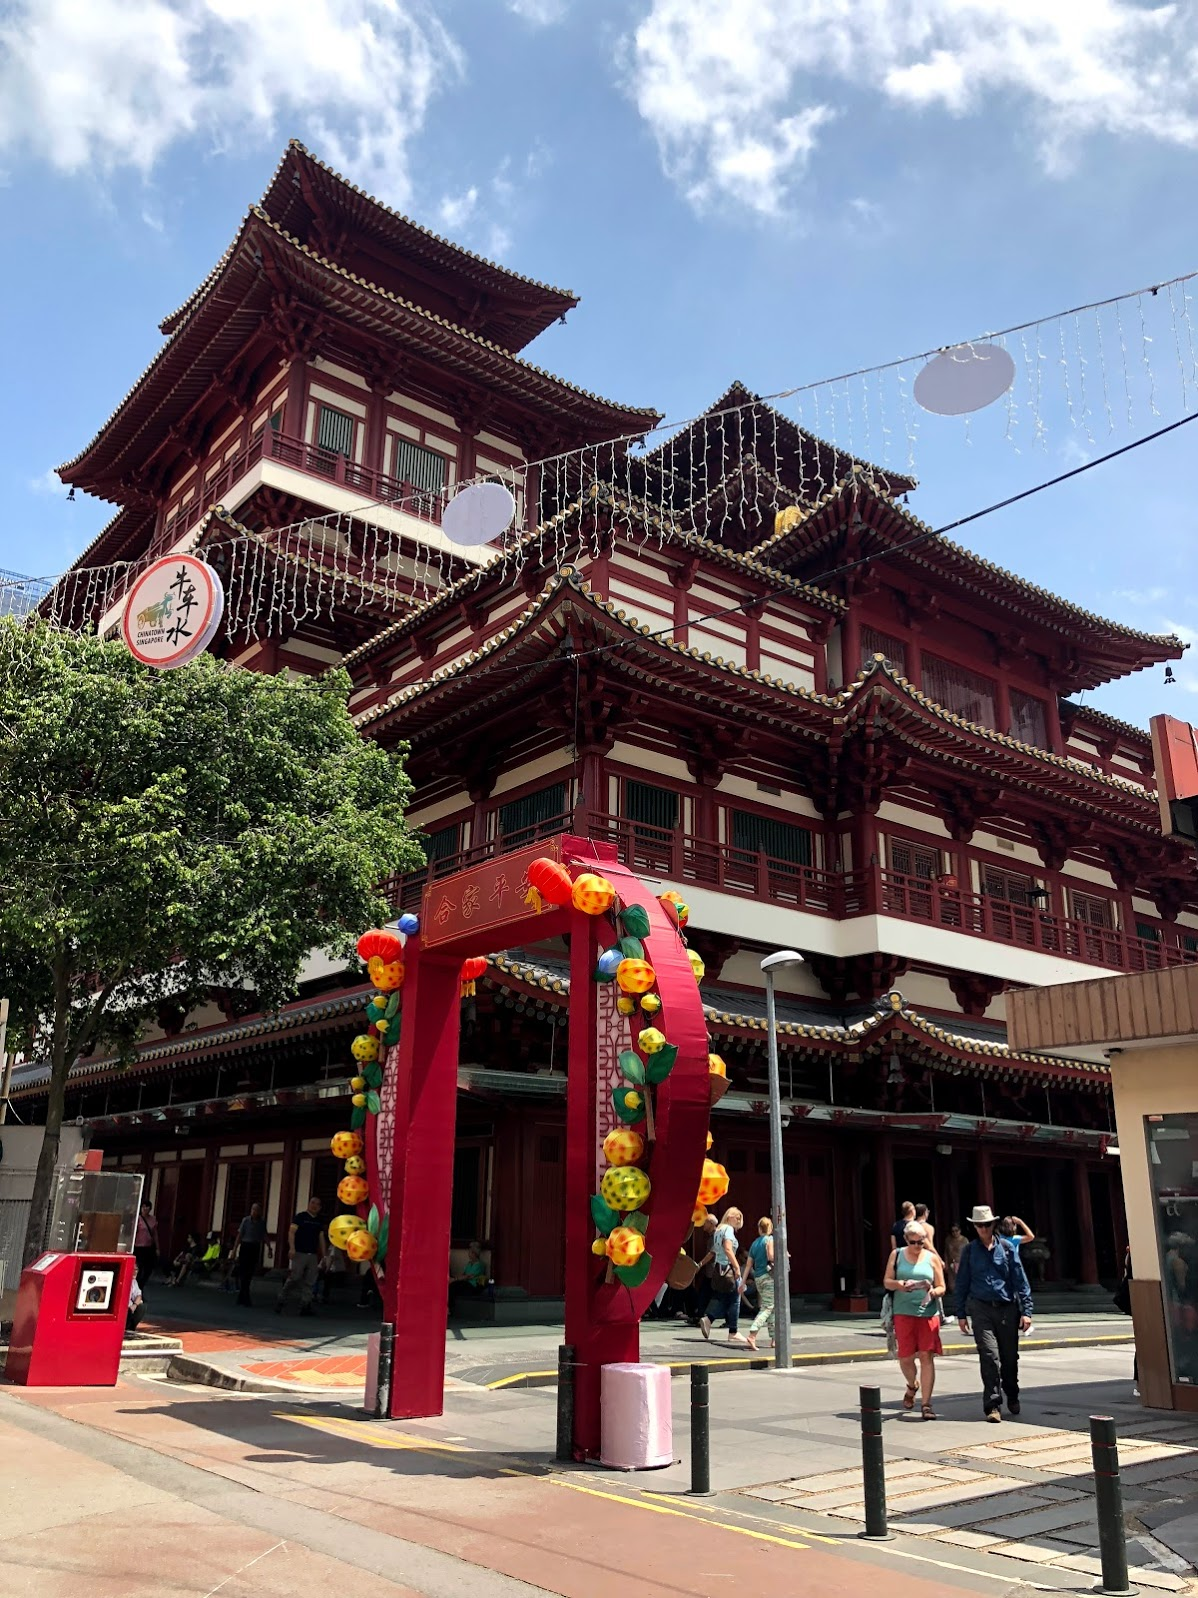 Buddha Tooth Relic Temple was quite beautiful and part of Chinatown. It feels much bigger inside and has a garden on the top floor.